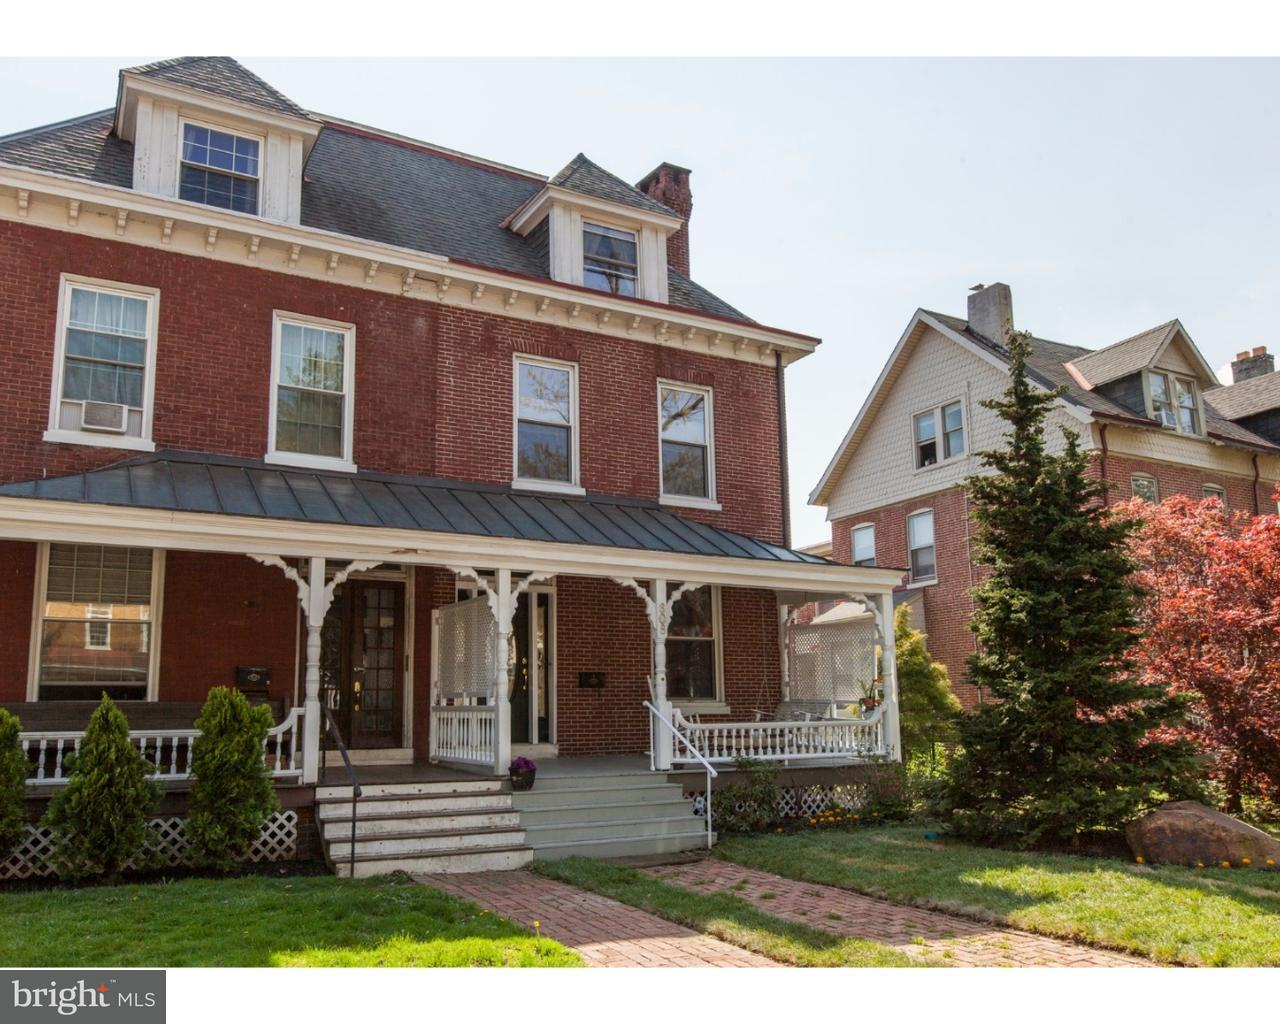 608 S High Street West Chester, PA 19382